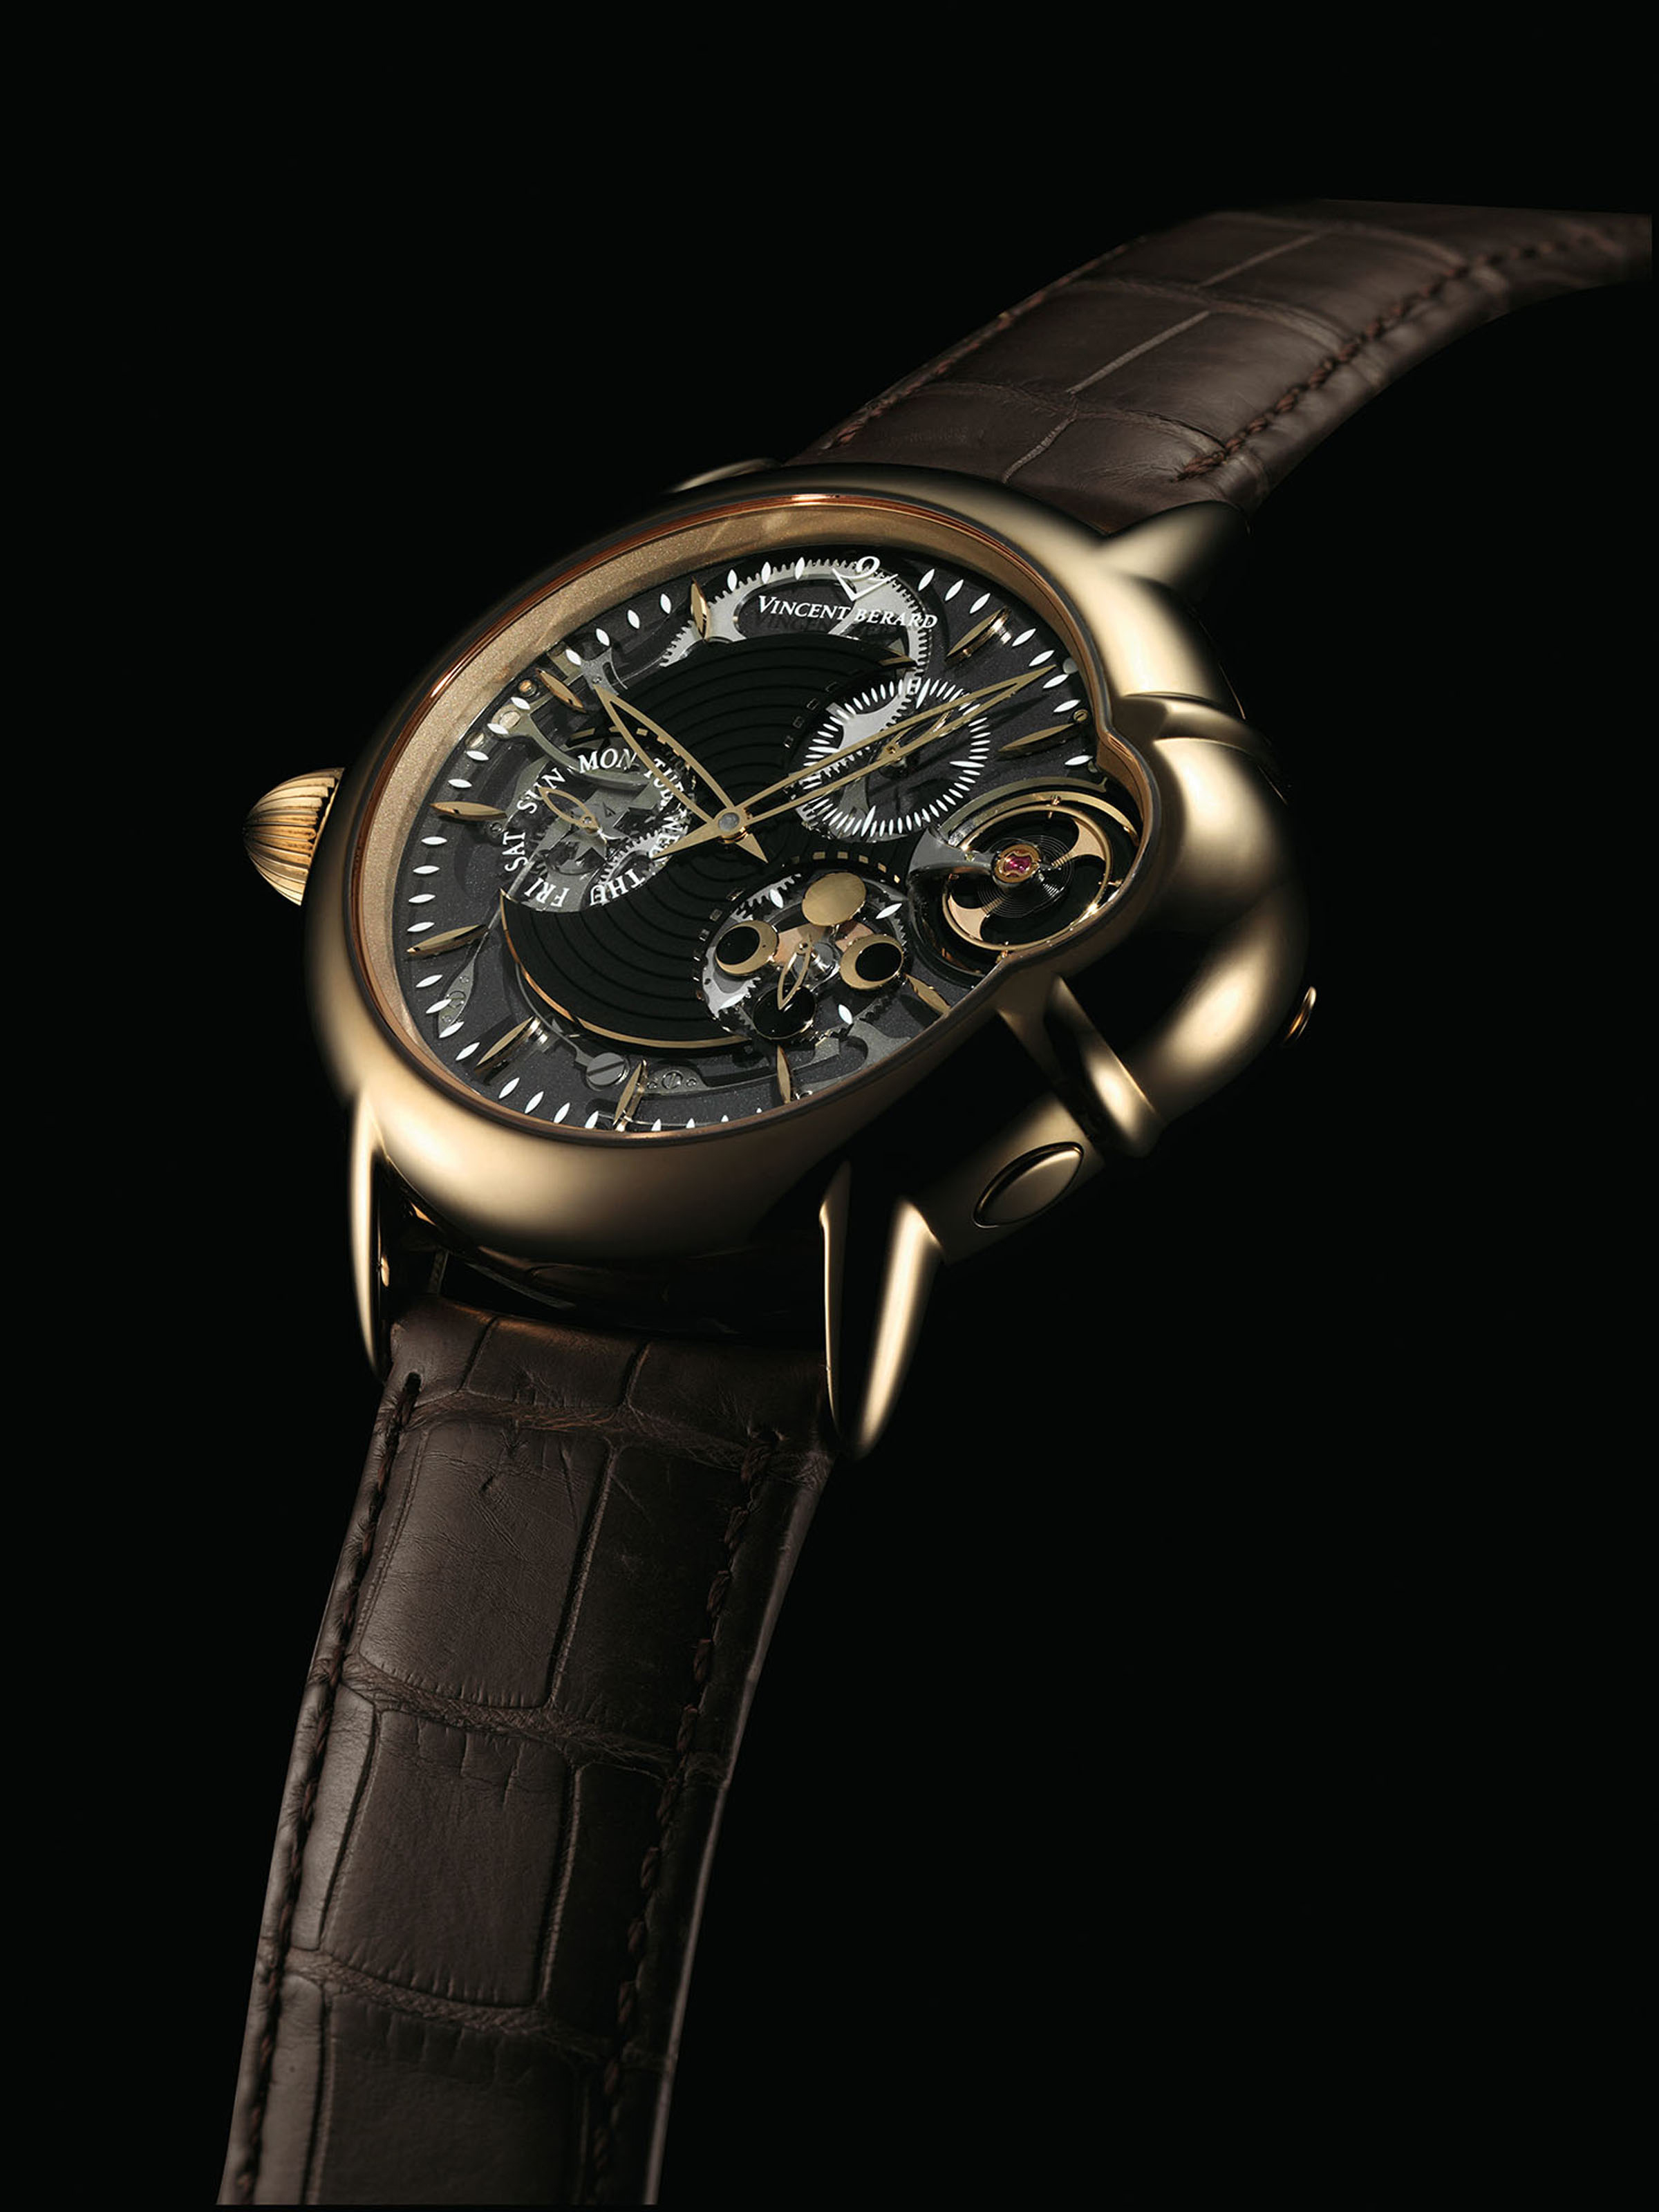 VINCENT BERARD. AN 18K PINK GOLD LEFT-HANDED SEMI-SKELETONISED WRISTWATCH WITH MONTHLY LUNAR CYCLE AND DAY